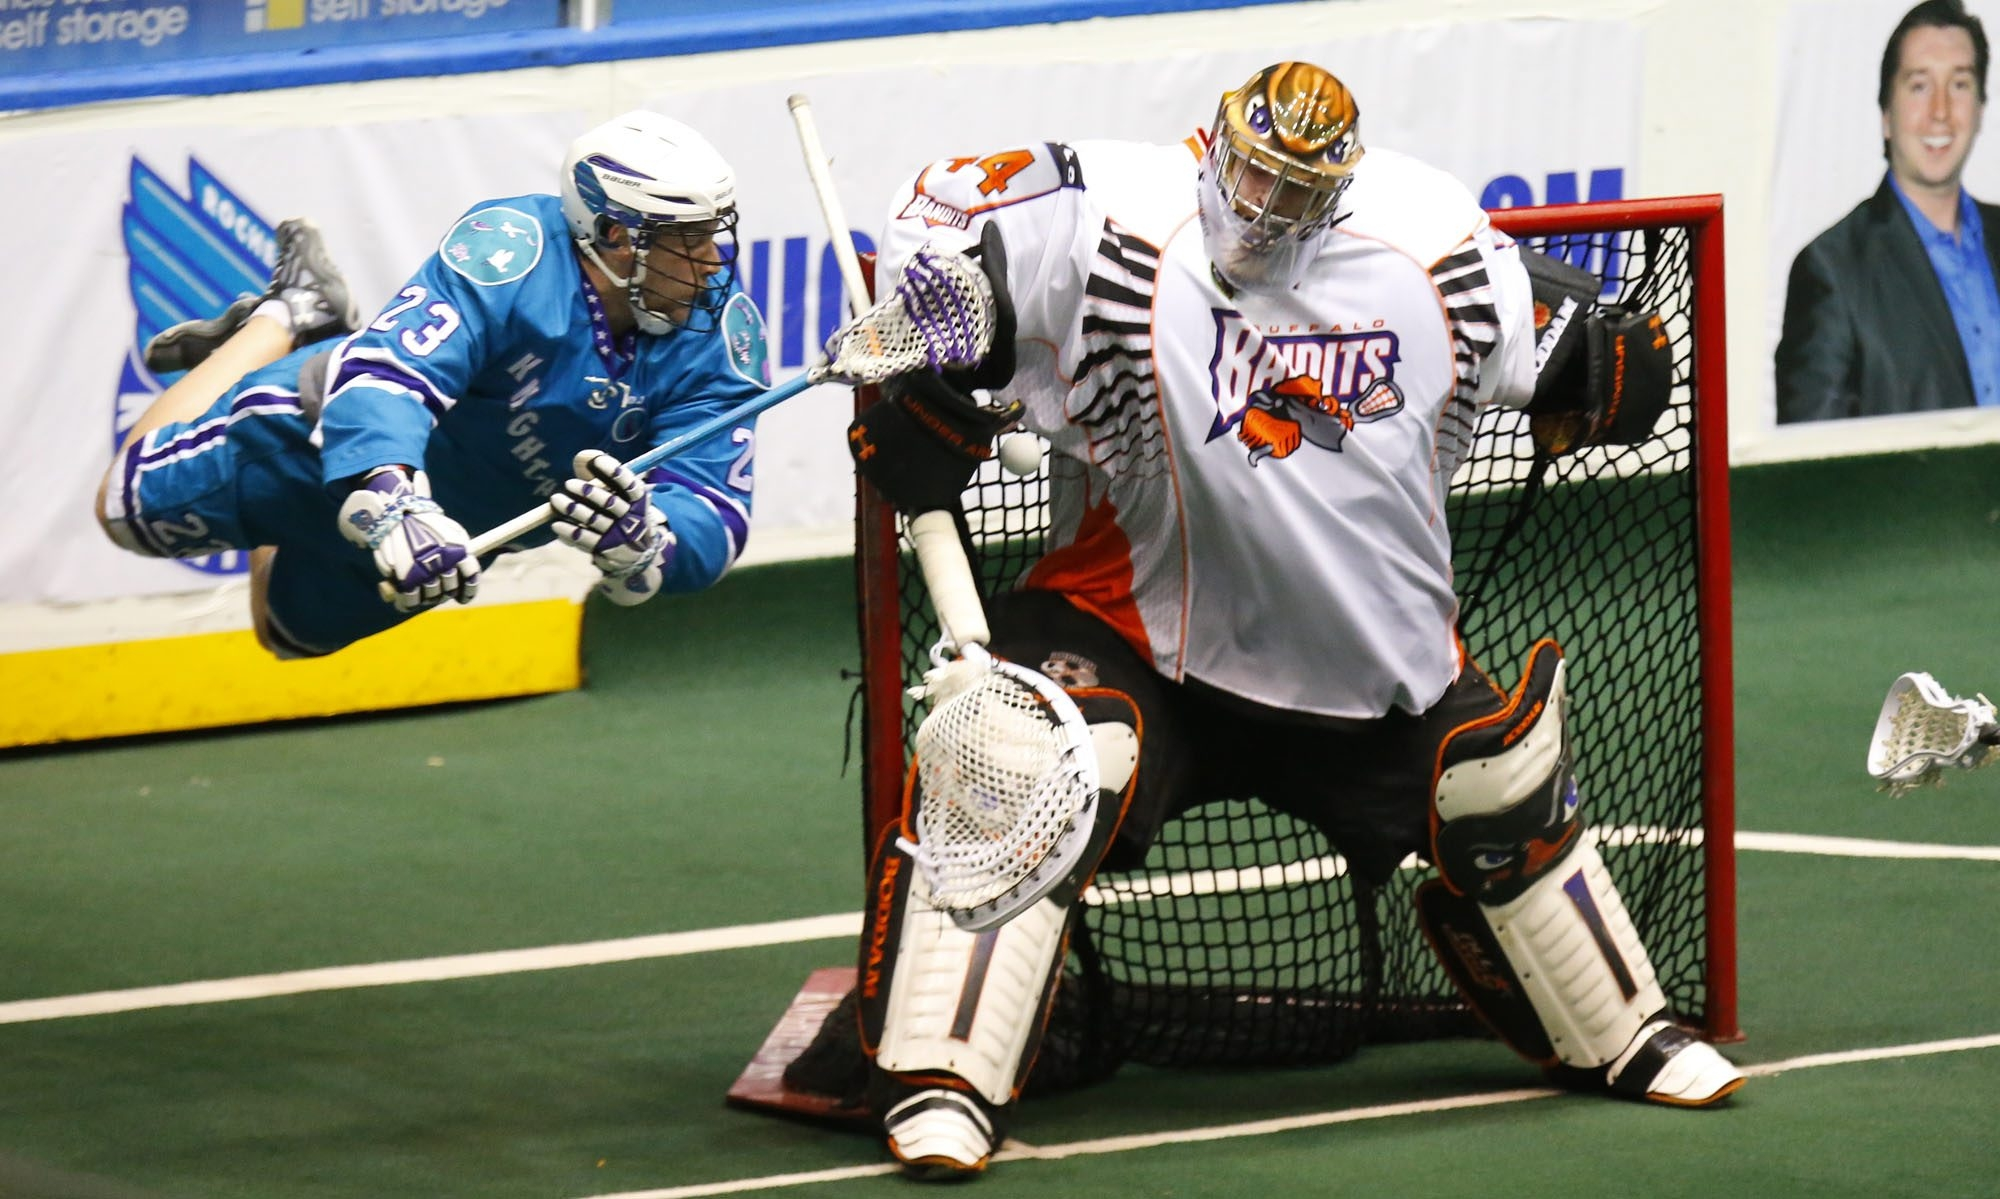 Buffalo goaltender Anthony Cosmo cannot stop Rochester's Cory Vitarelli from scoring in the second half of their NLL playoff game.